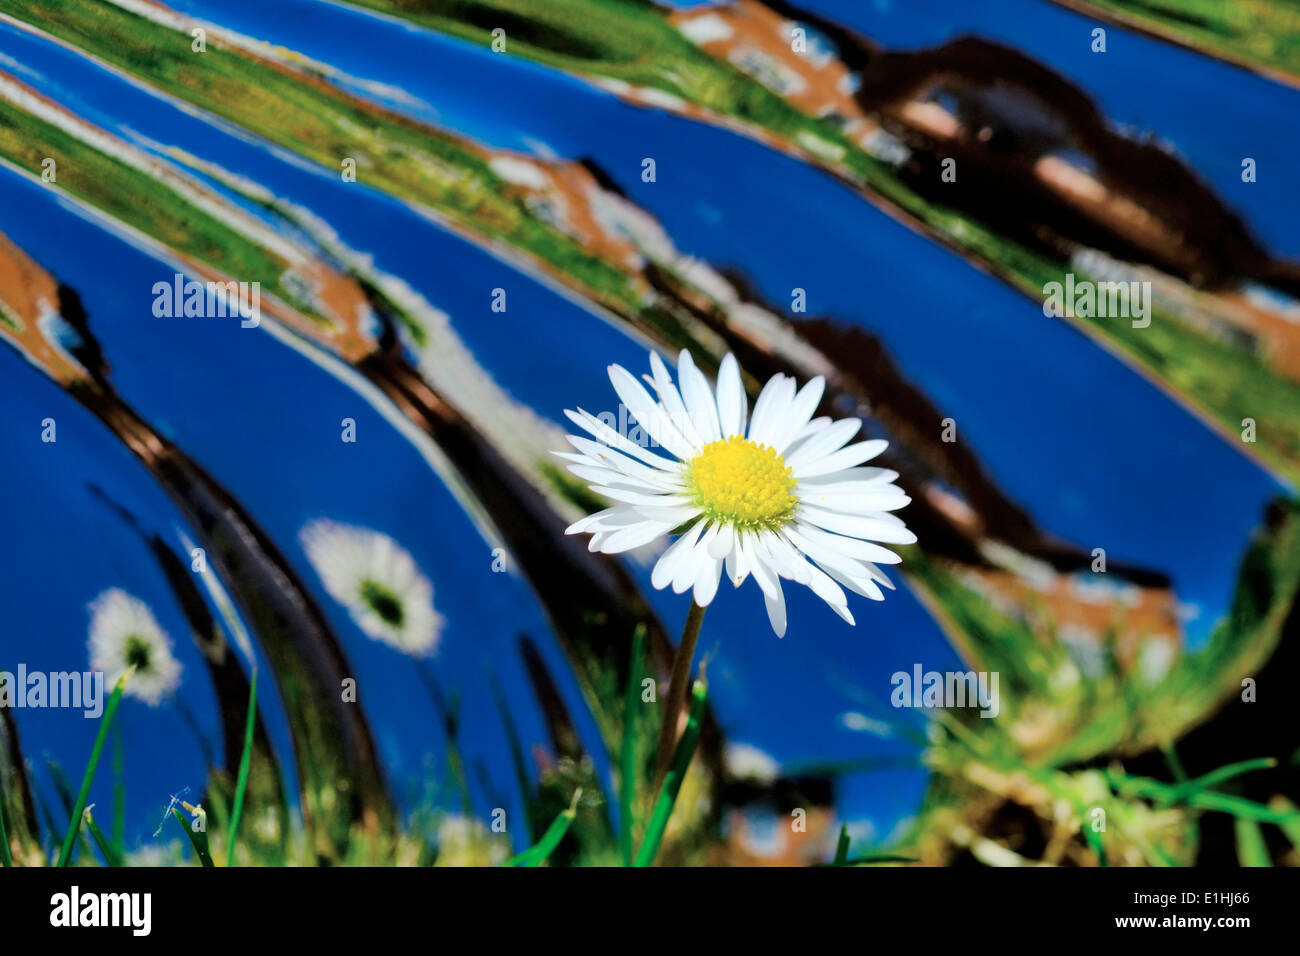 A daisy in a garden with a mirrored reflective warped background - Stock Image